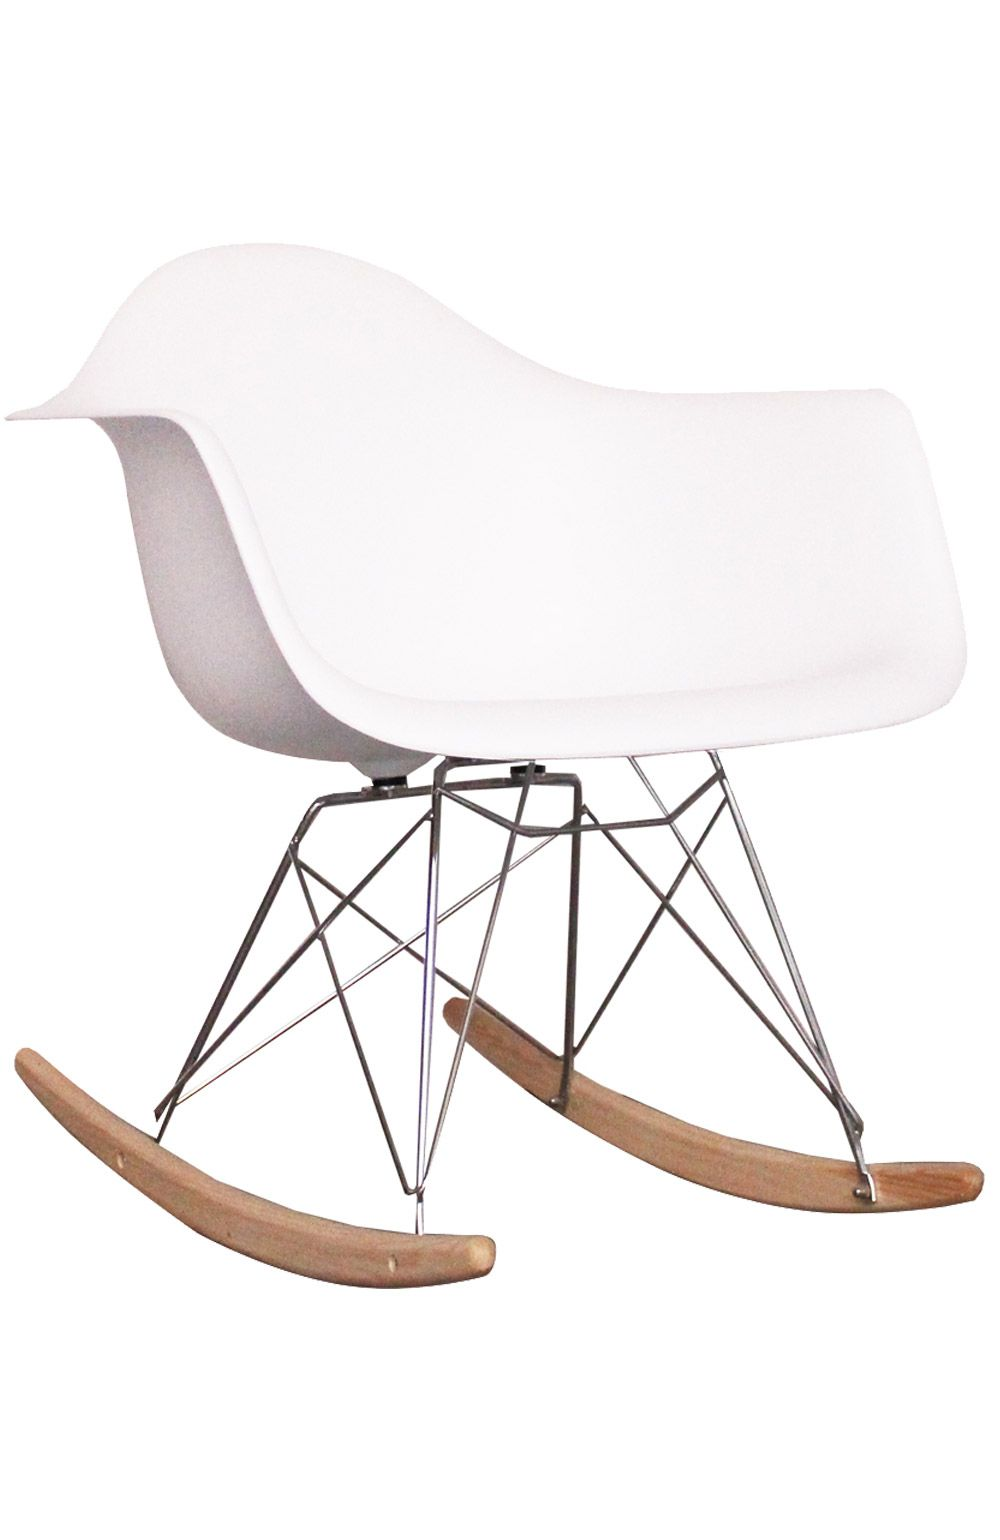 fauteuil à bascule rar | meubles blancs // white furniture ... - Chaise A Bascule Eames